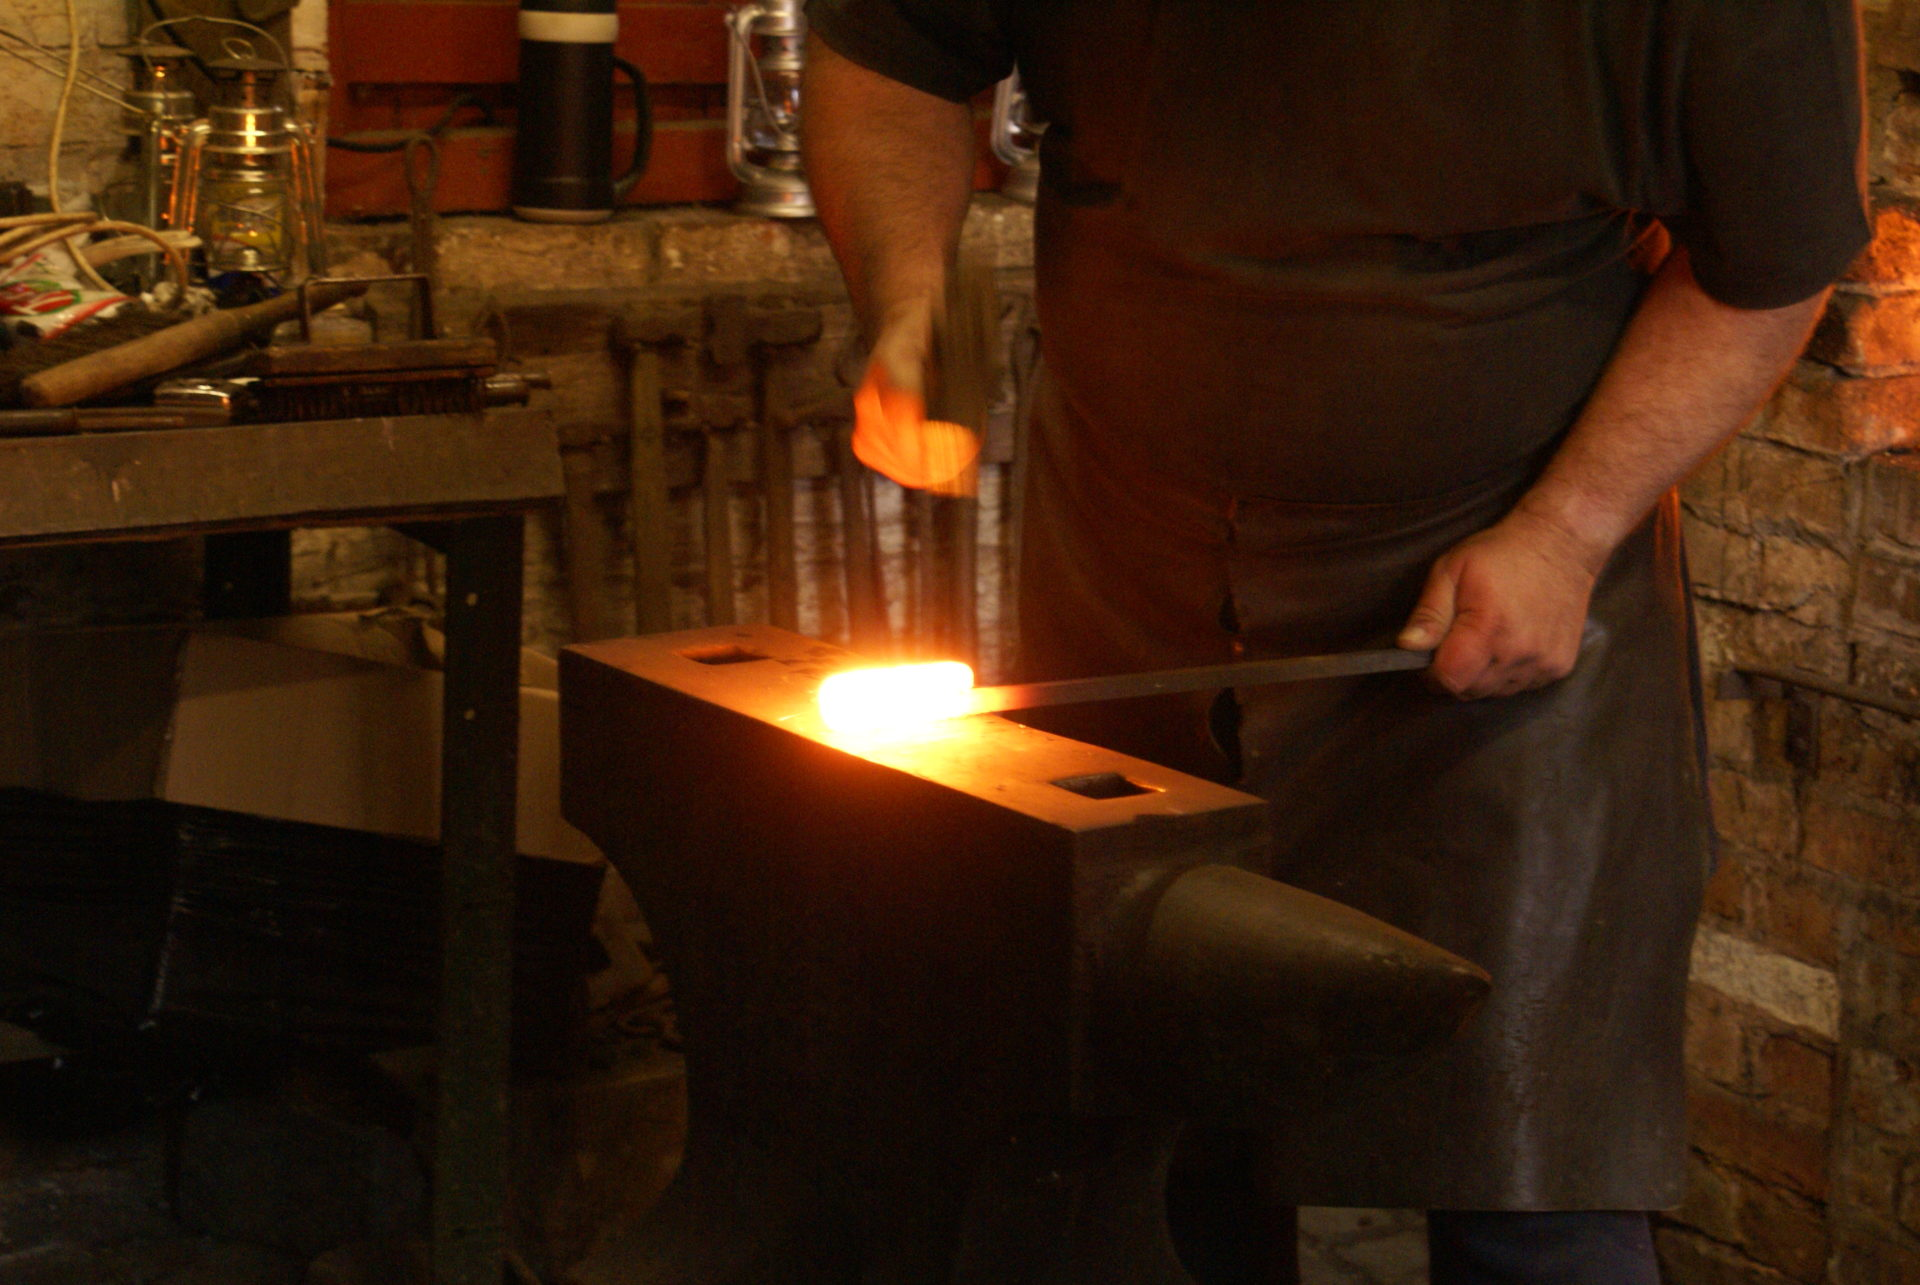 Avoncroft's Blacksmithing Courses are inspirational